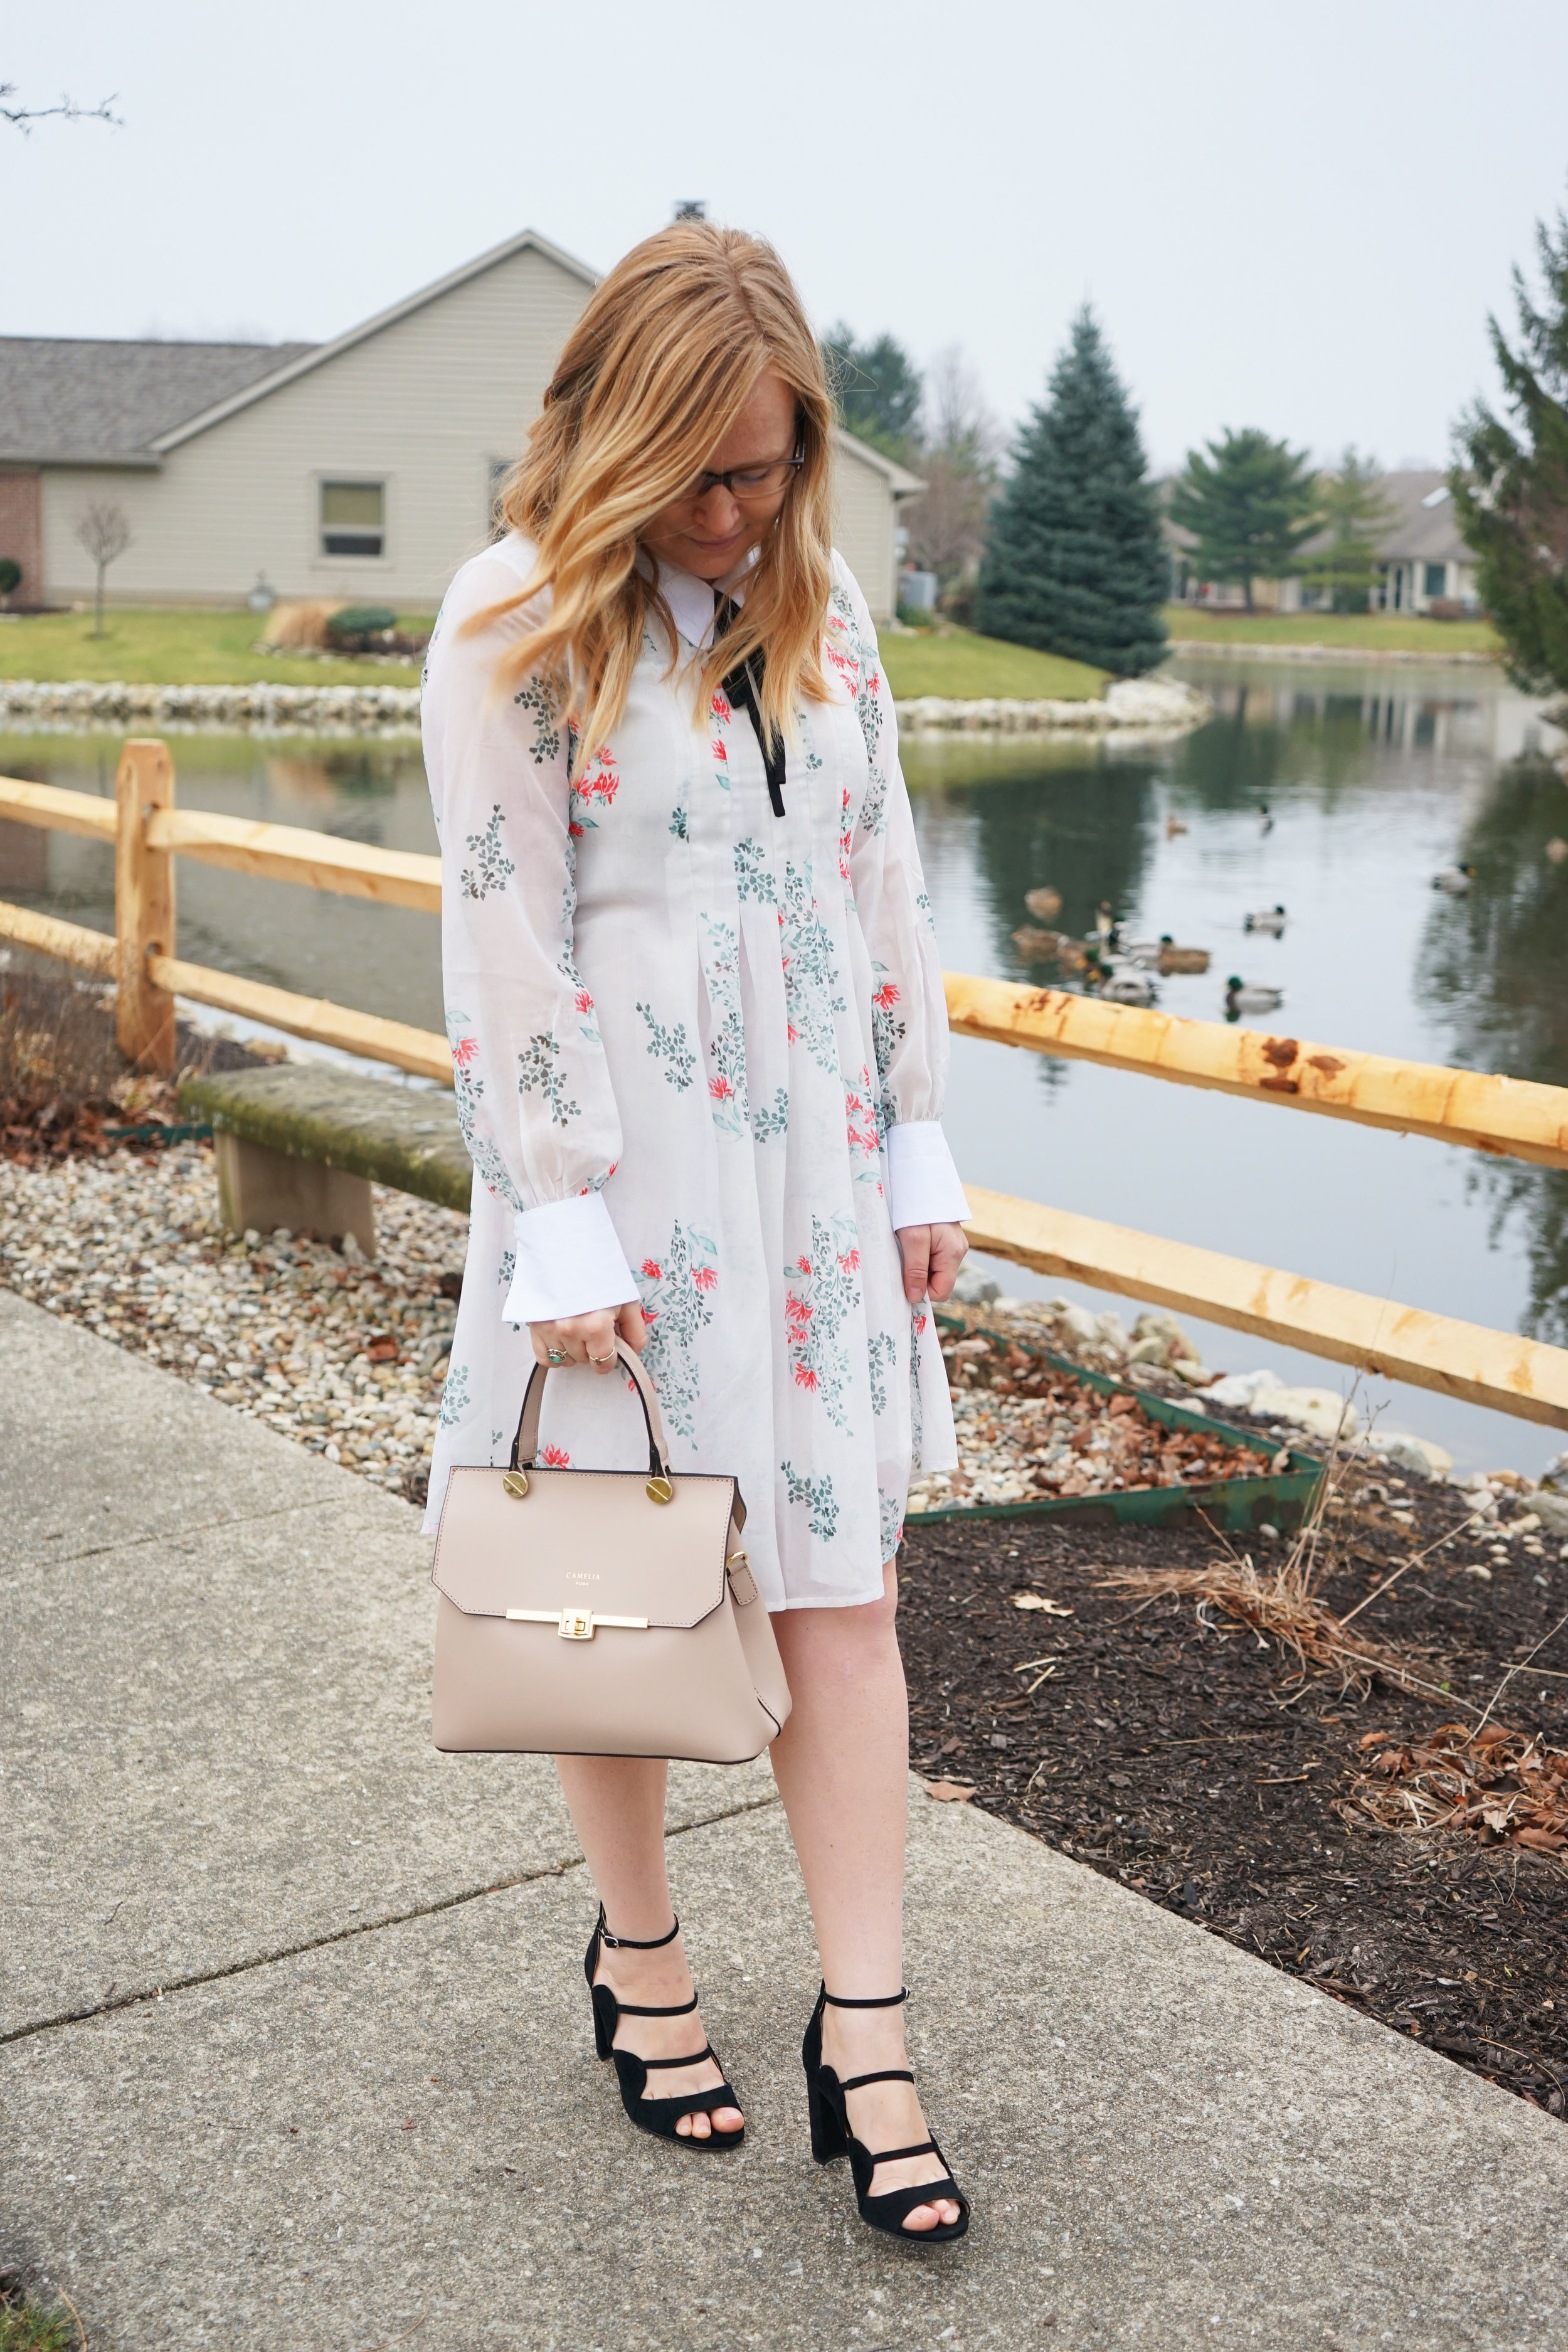 Maggie a la Mode - Anthropologie HD in Paris Louisa Swing Dress, Ann Taylor Ashton Suede Scalloped Heels, Camelia Roma Leather Handbag Cameo